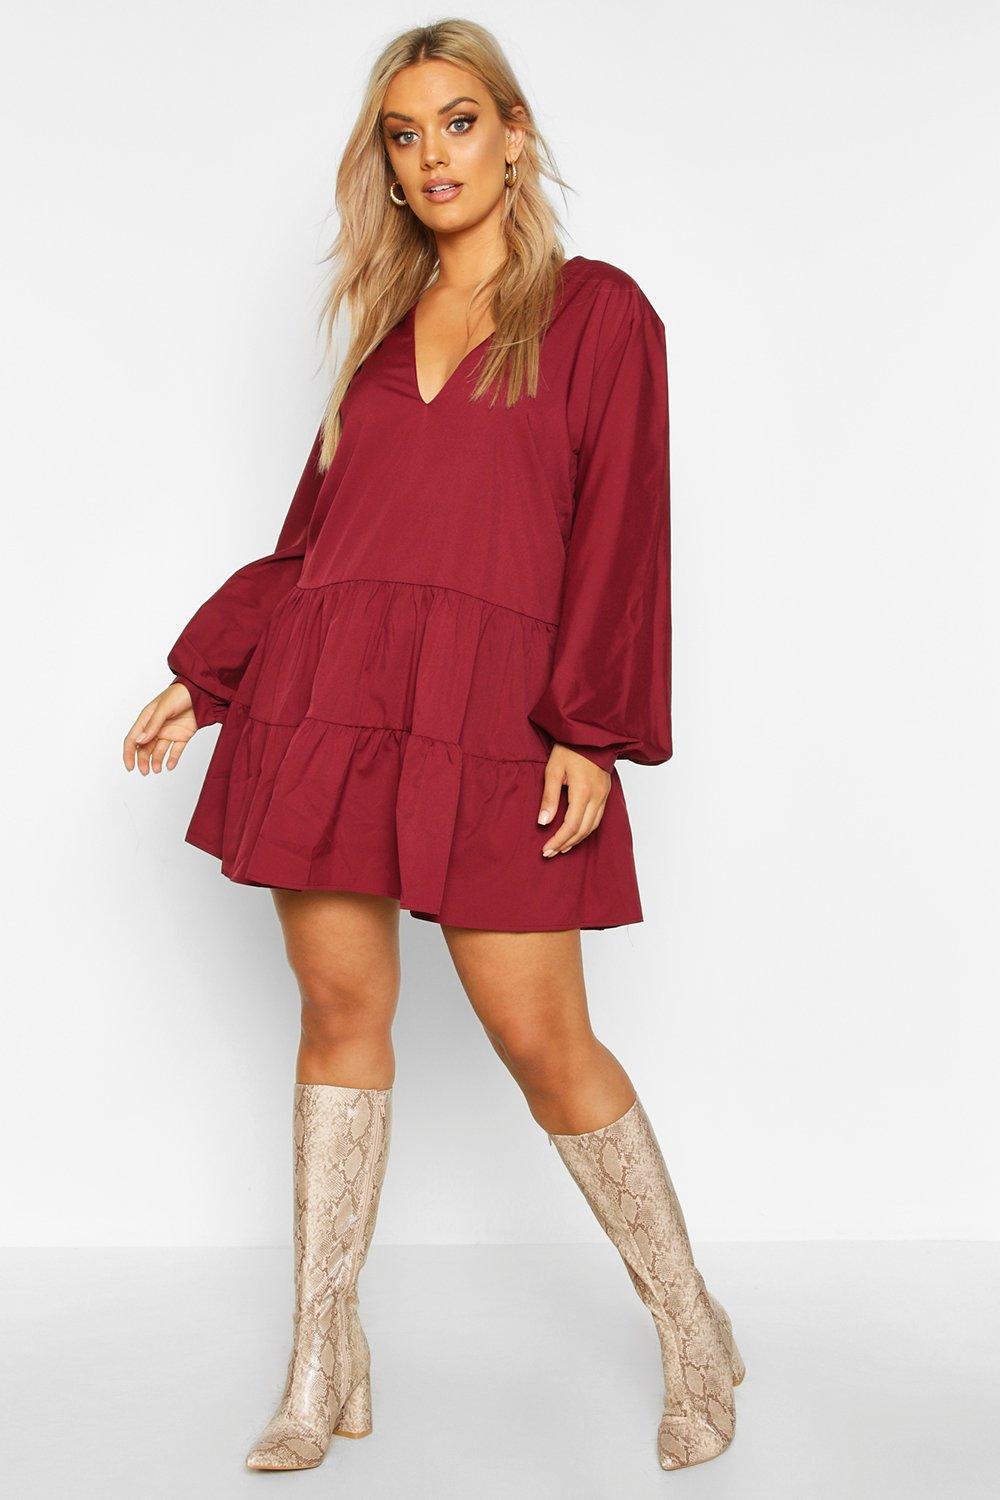 boohoo Womens Plus Tiered V Neck Smock Dress - 16, Red